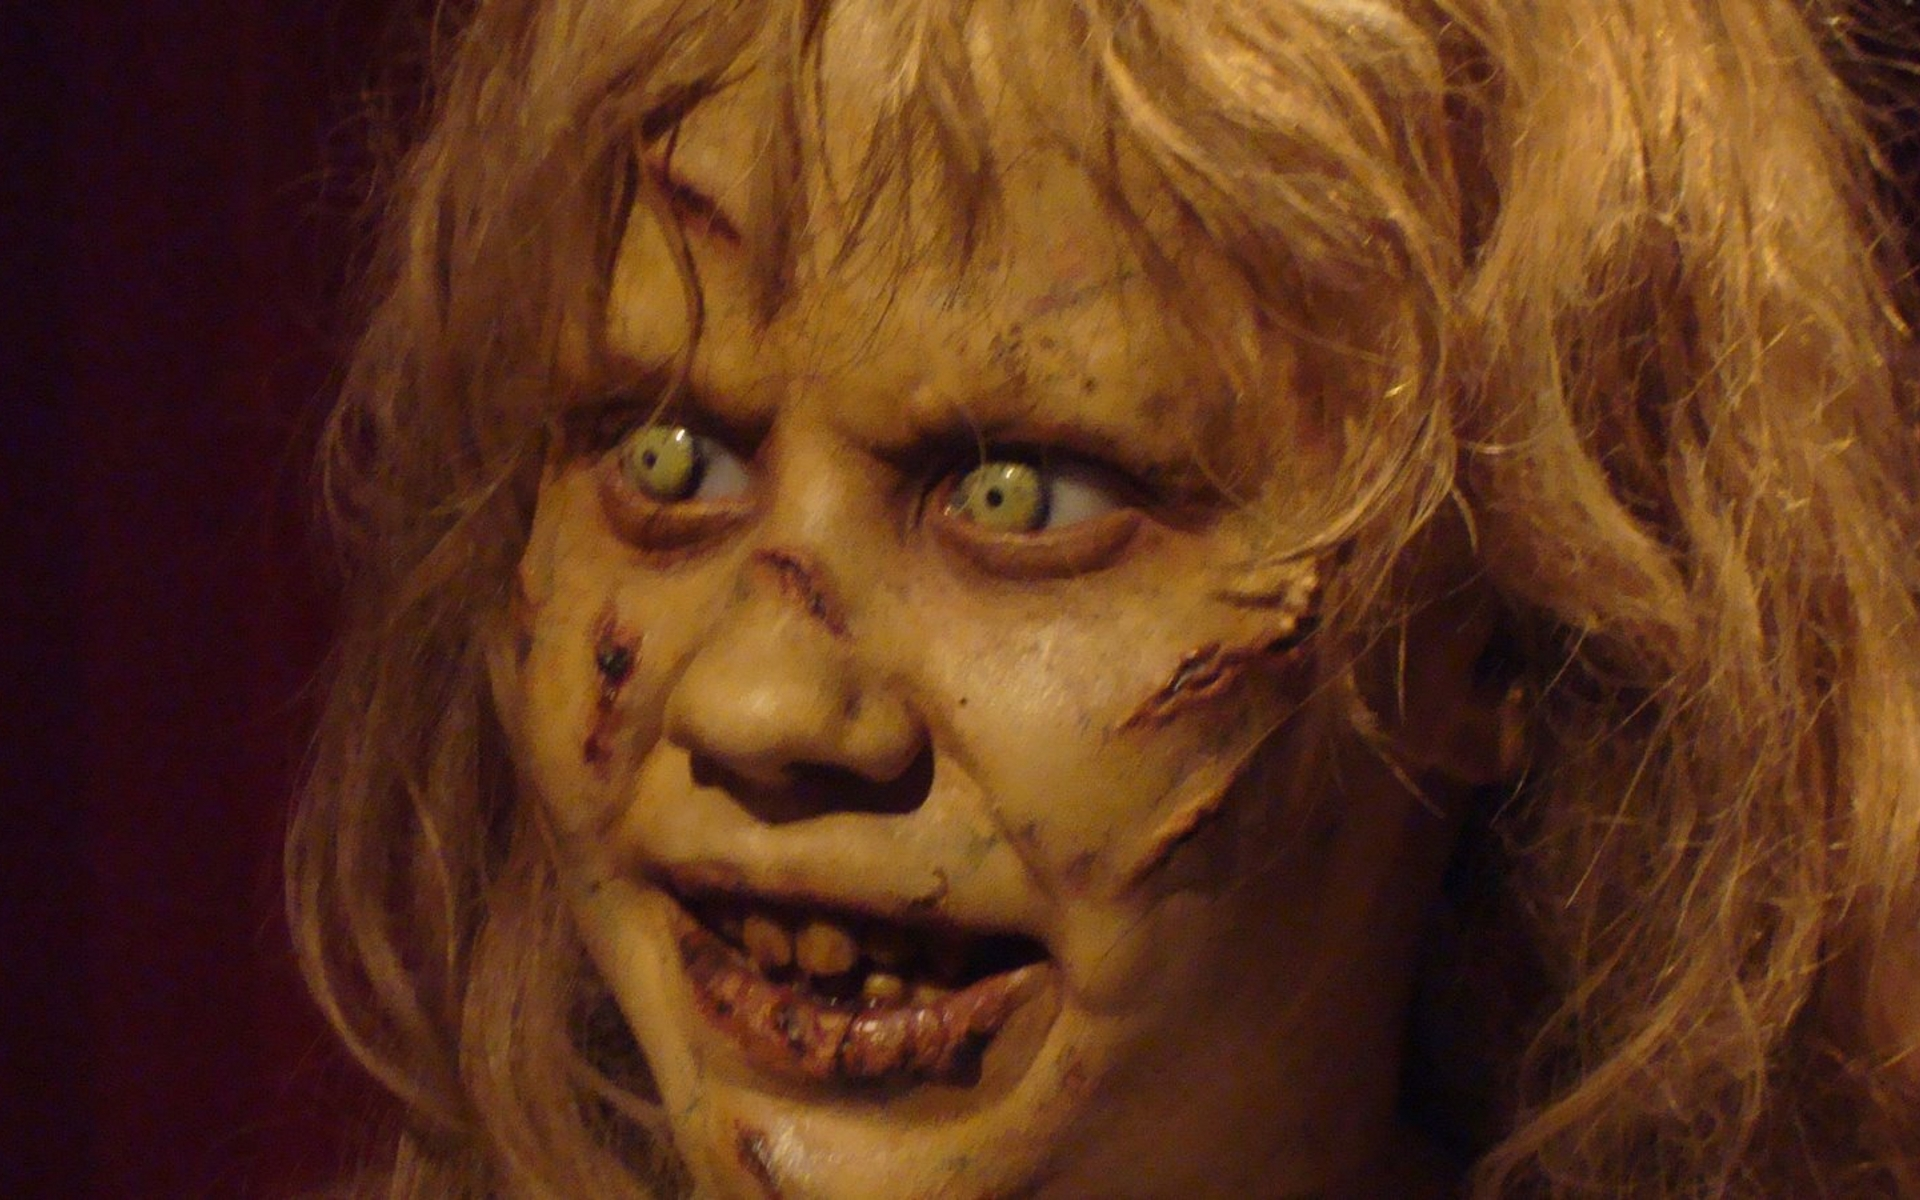 The Exorcist images The Exorcist wallpaper photos 34302938 1920x1200